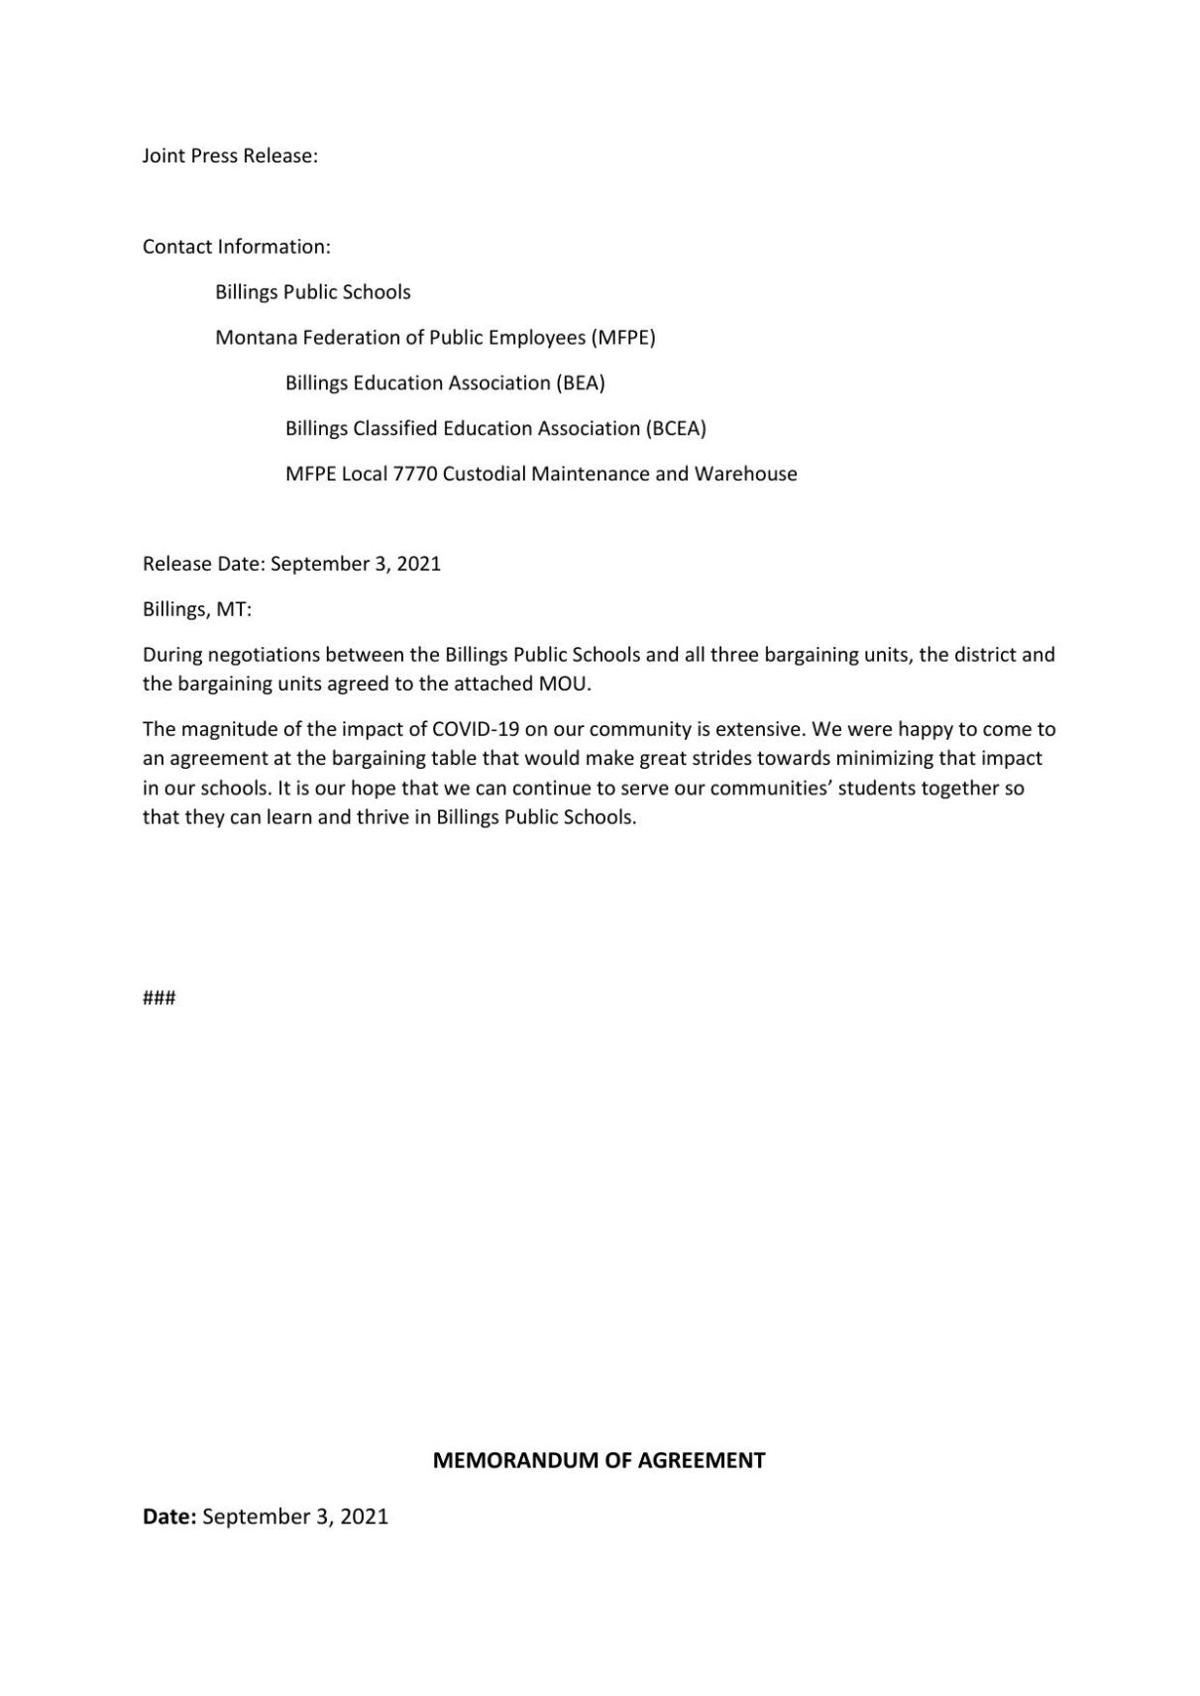 Joint Press Release MOU September 3